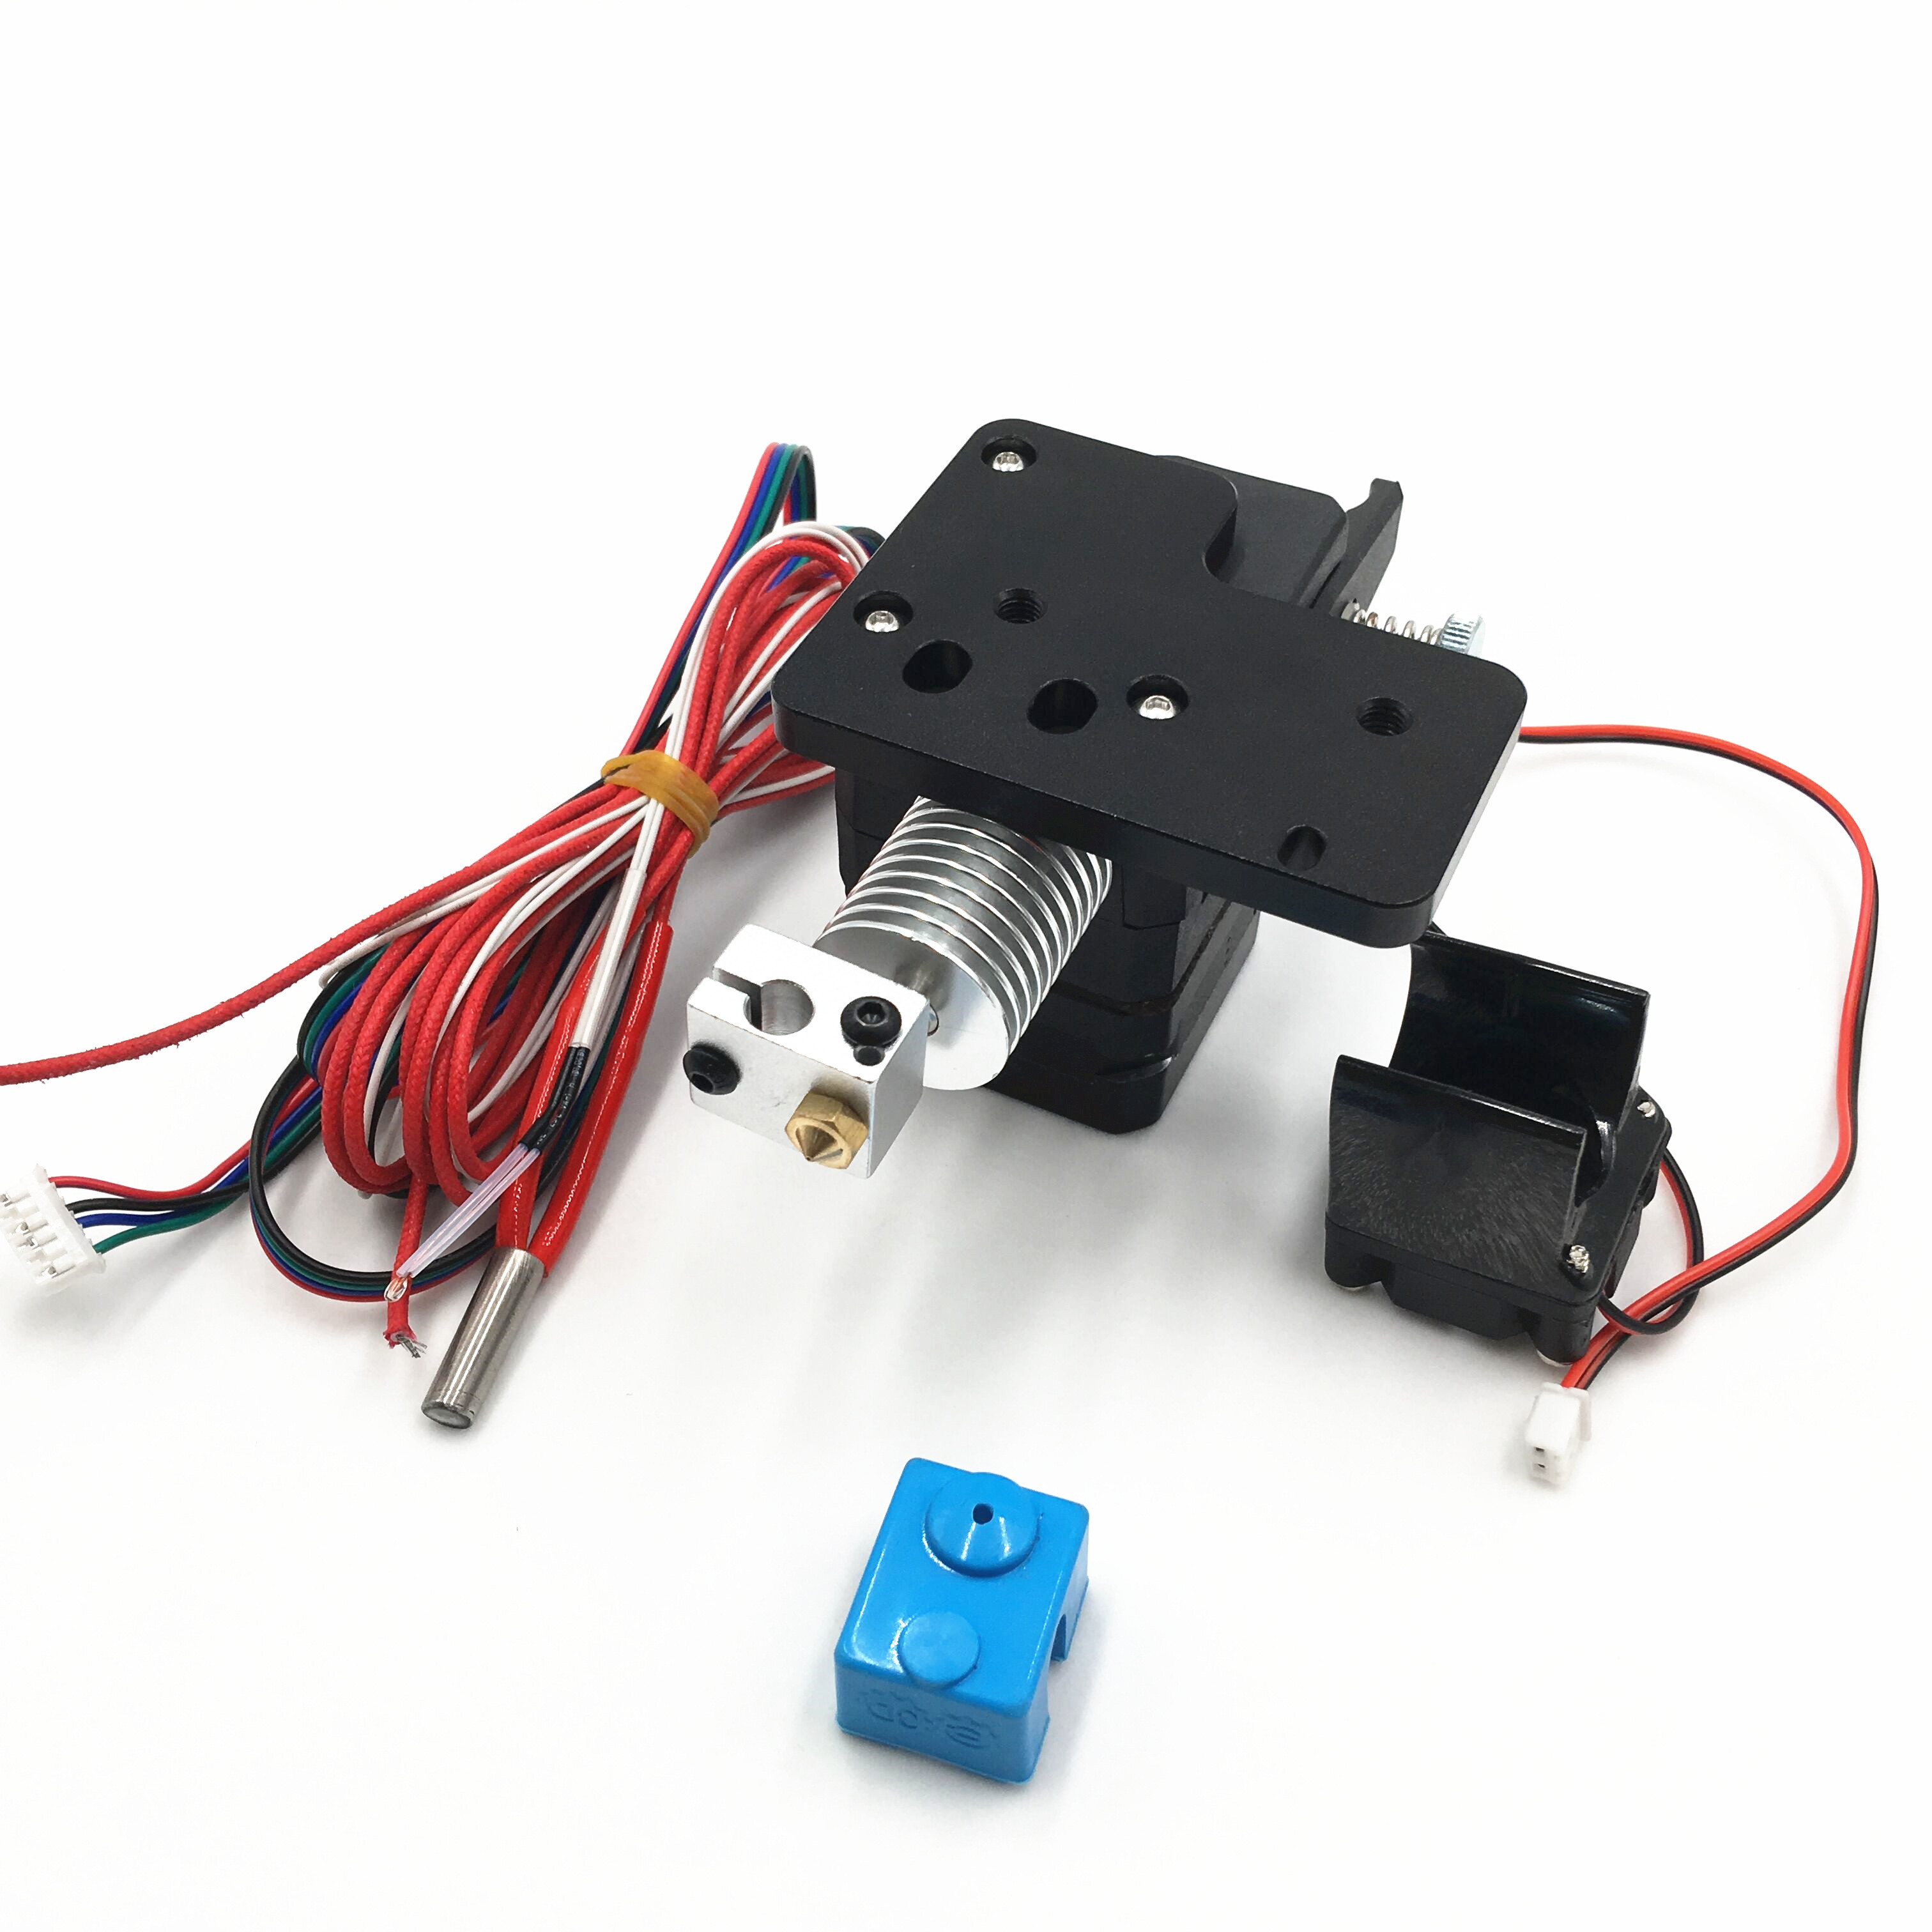 Ender 3 Easy Install Extruder Upgrade 3 Pro Direct Drive Kit